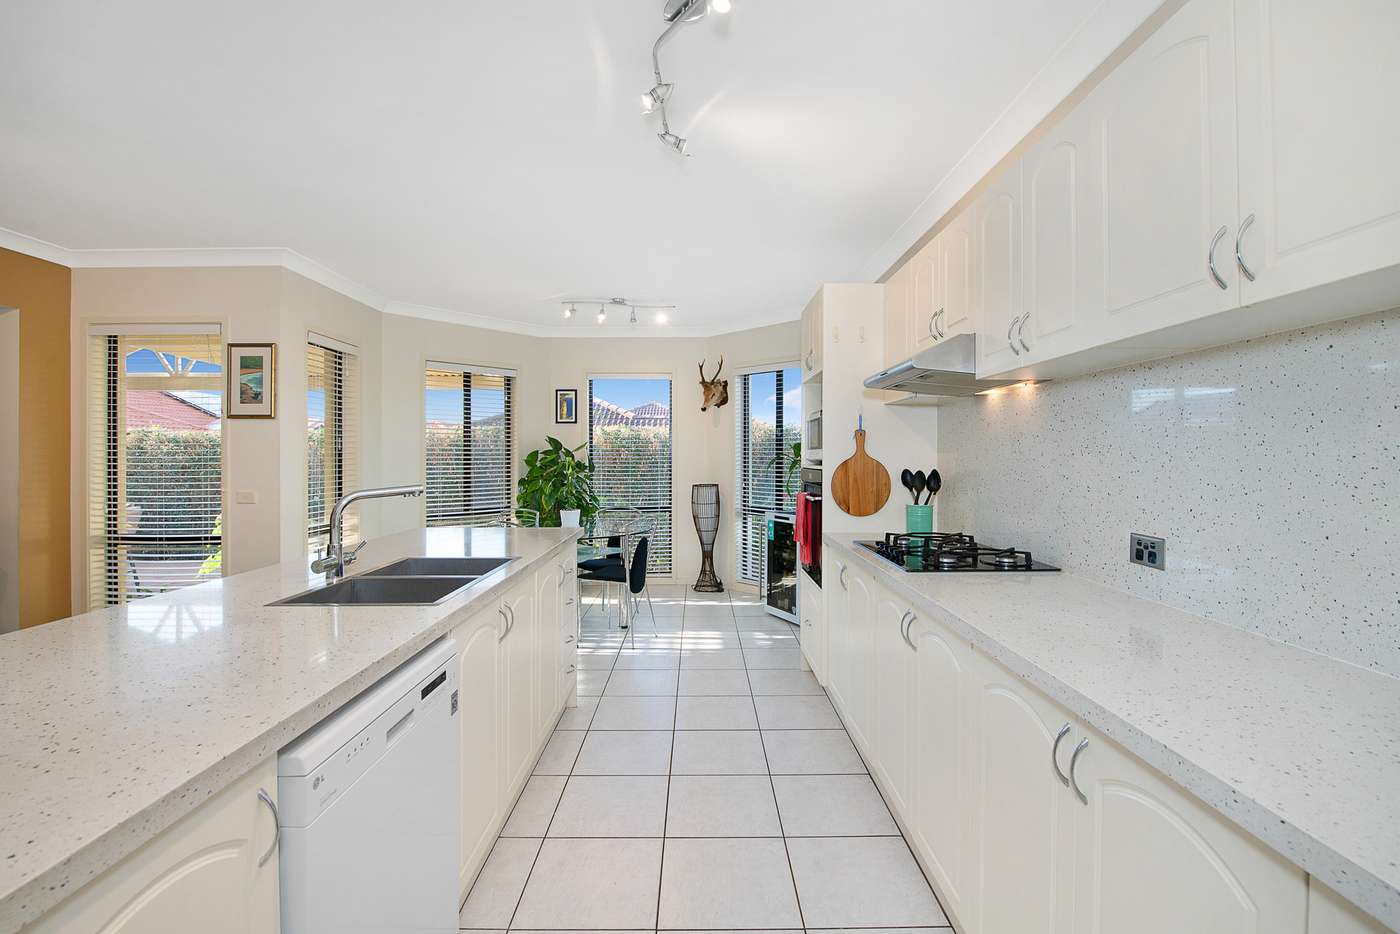 Sixth view of Homely house listing, 2 Alpine Way, Glenwood NSW 2768